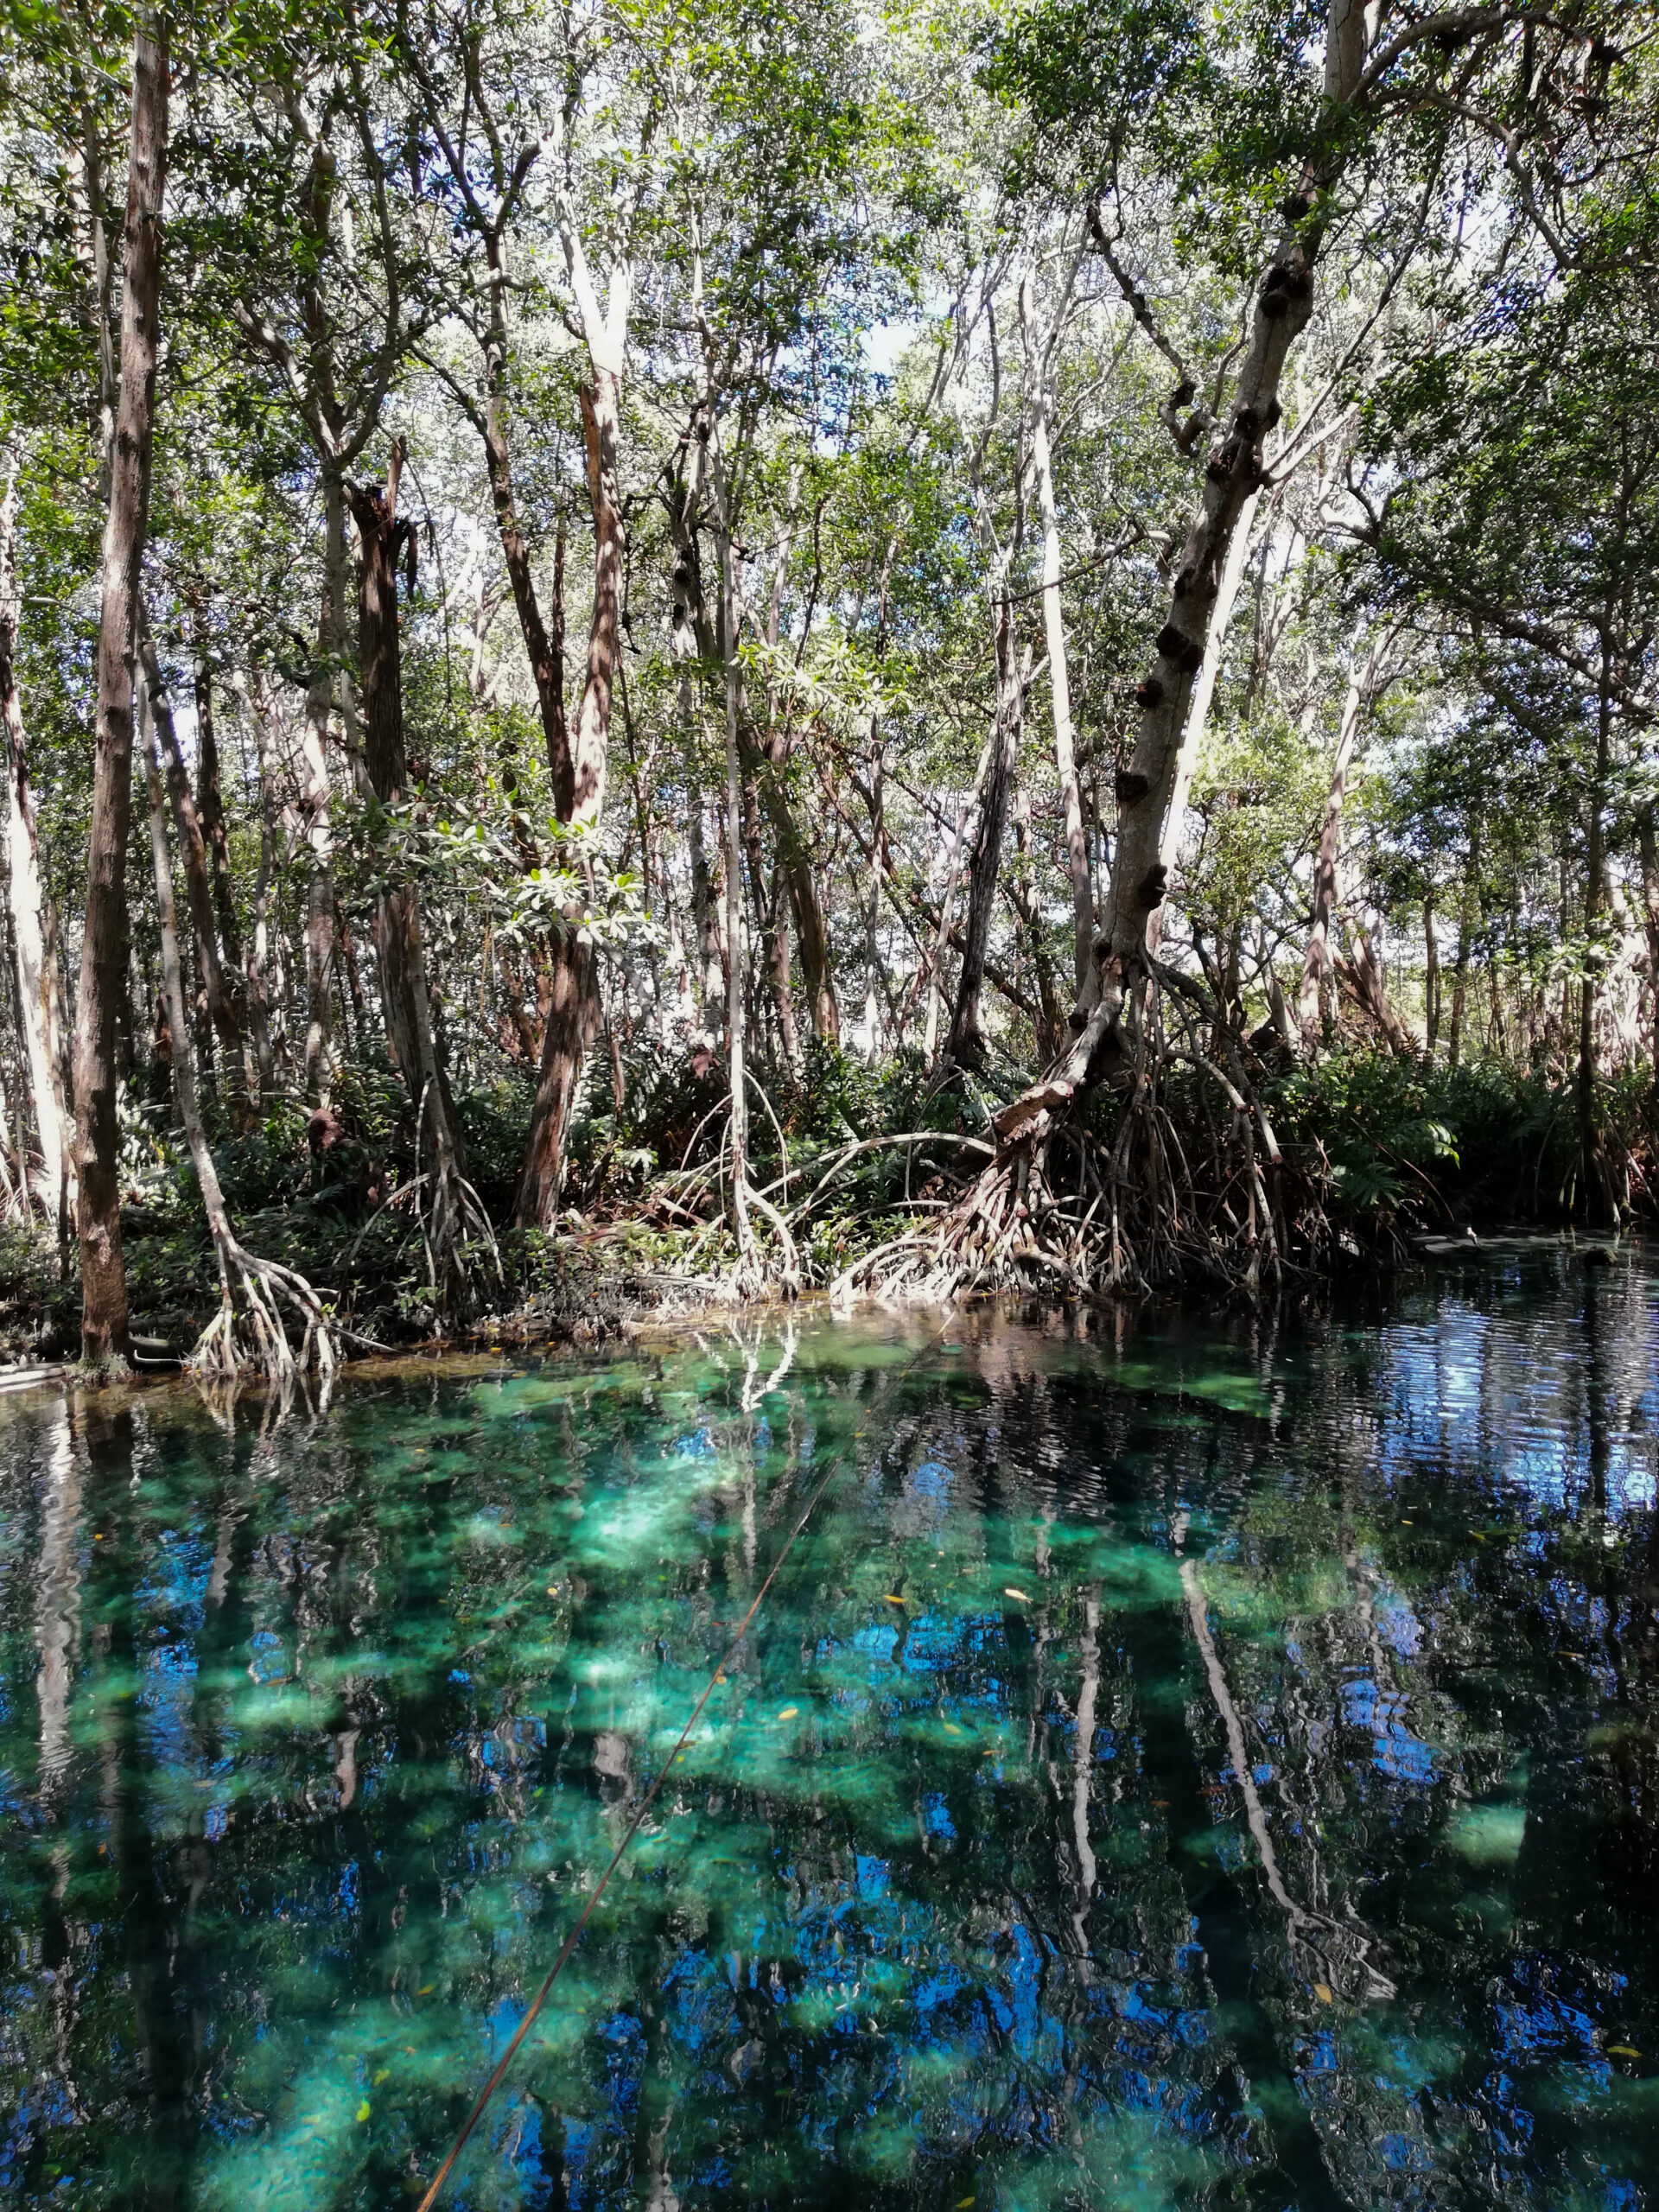 yucatan, homun, cenotes, sink holes, travel guide, mexico